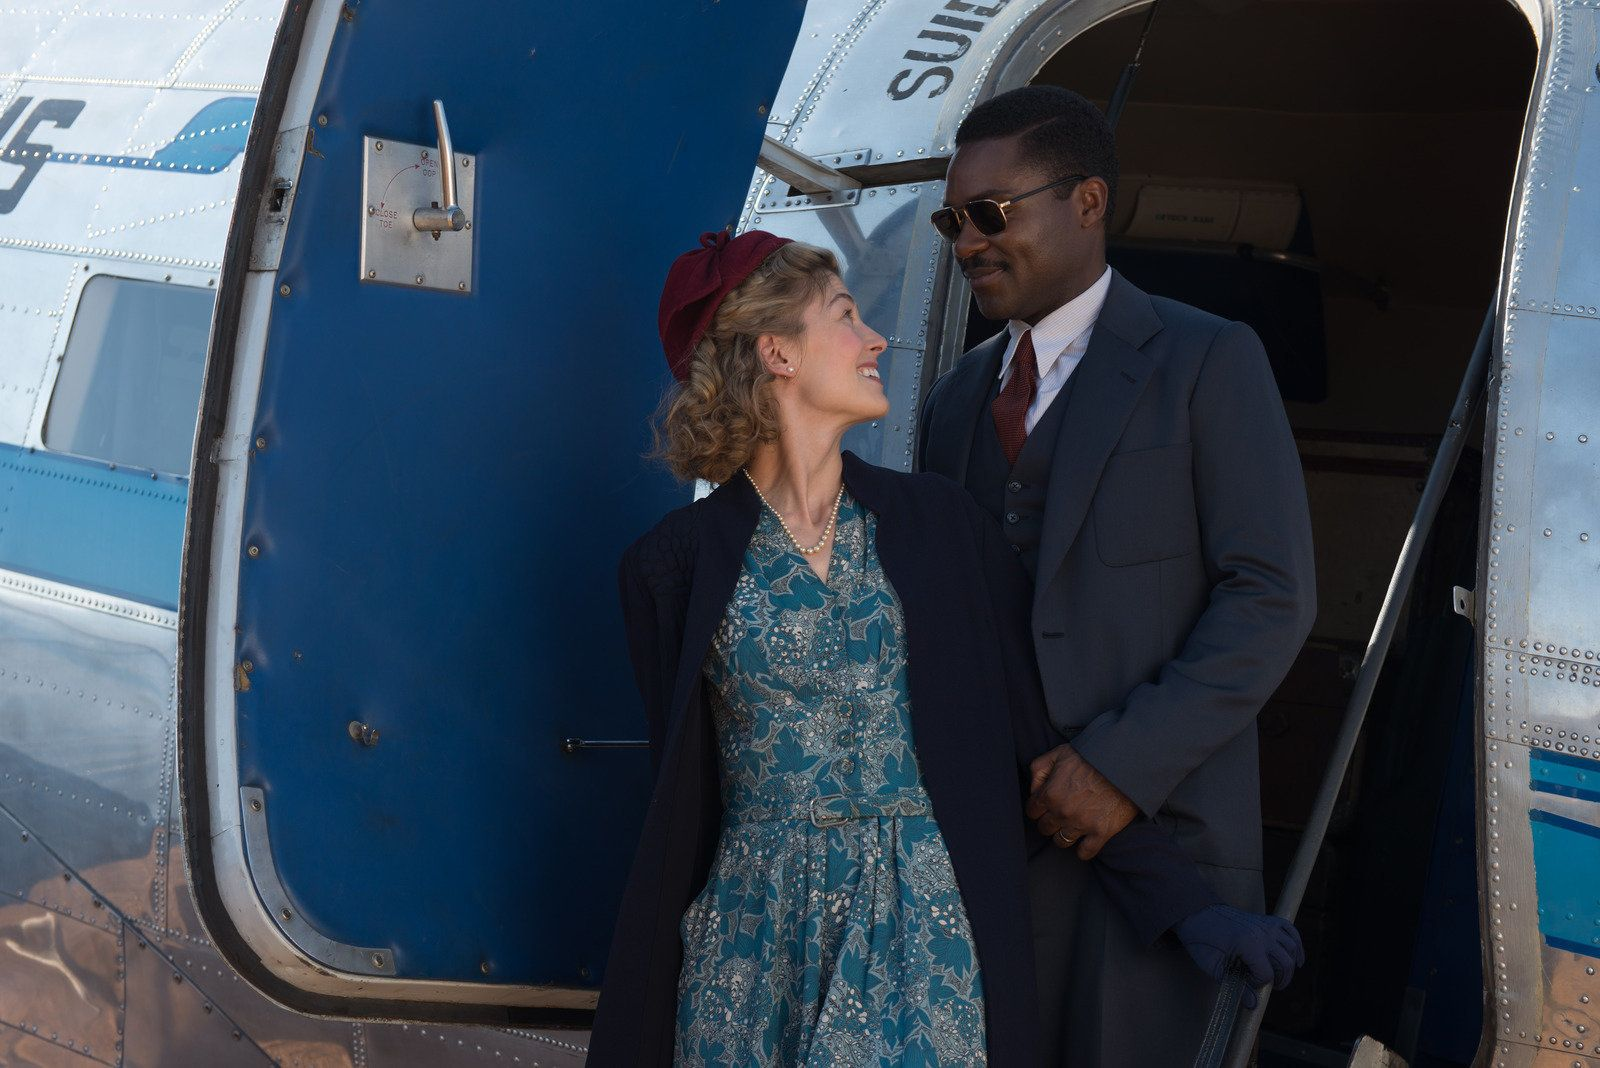 Rosamund Pike and David Oyelowo stage a meet-cute that butts up against the era's politics.